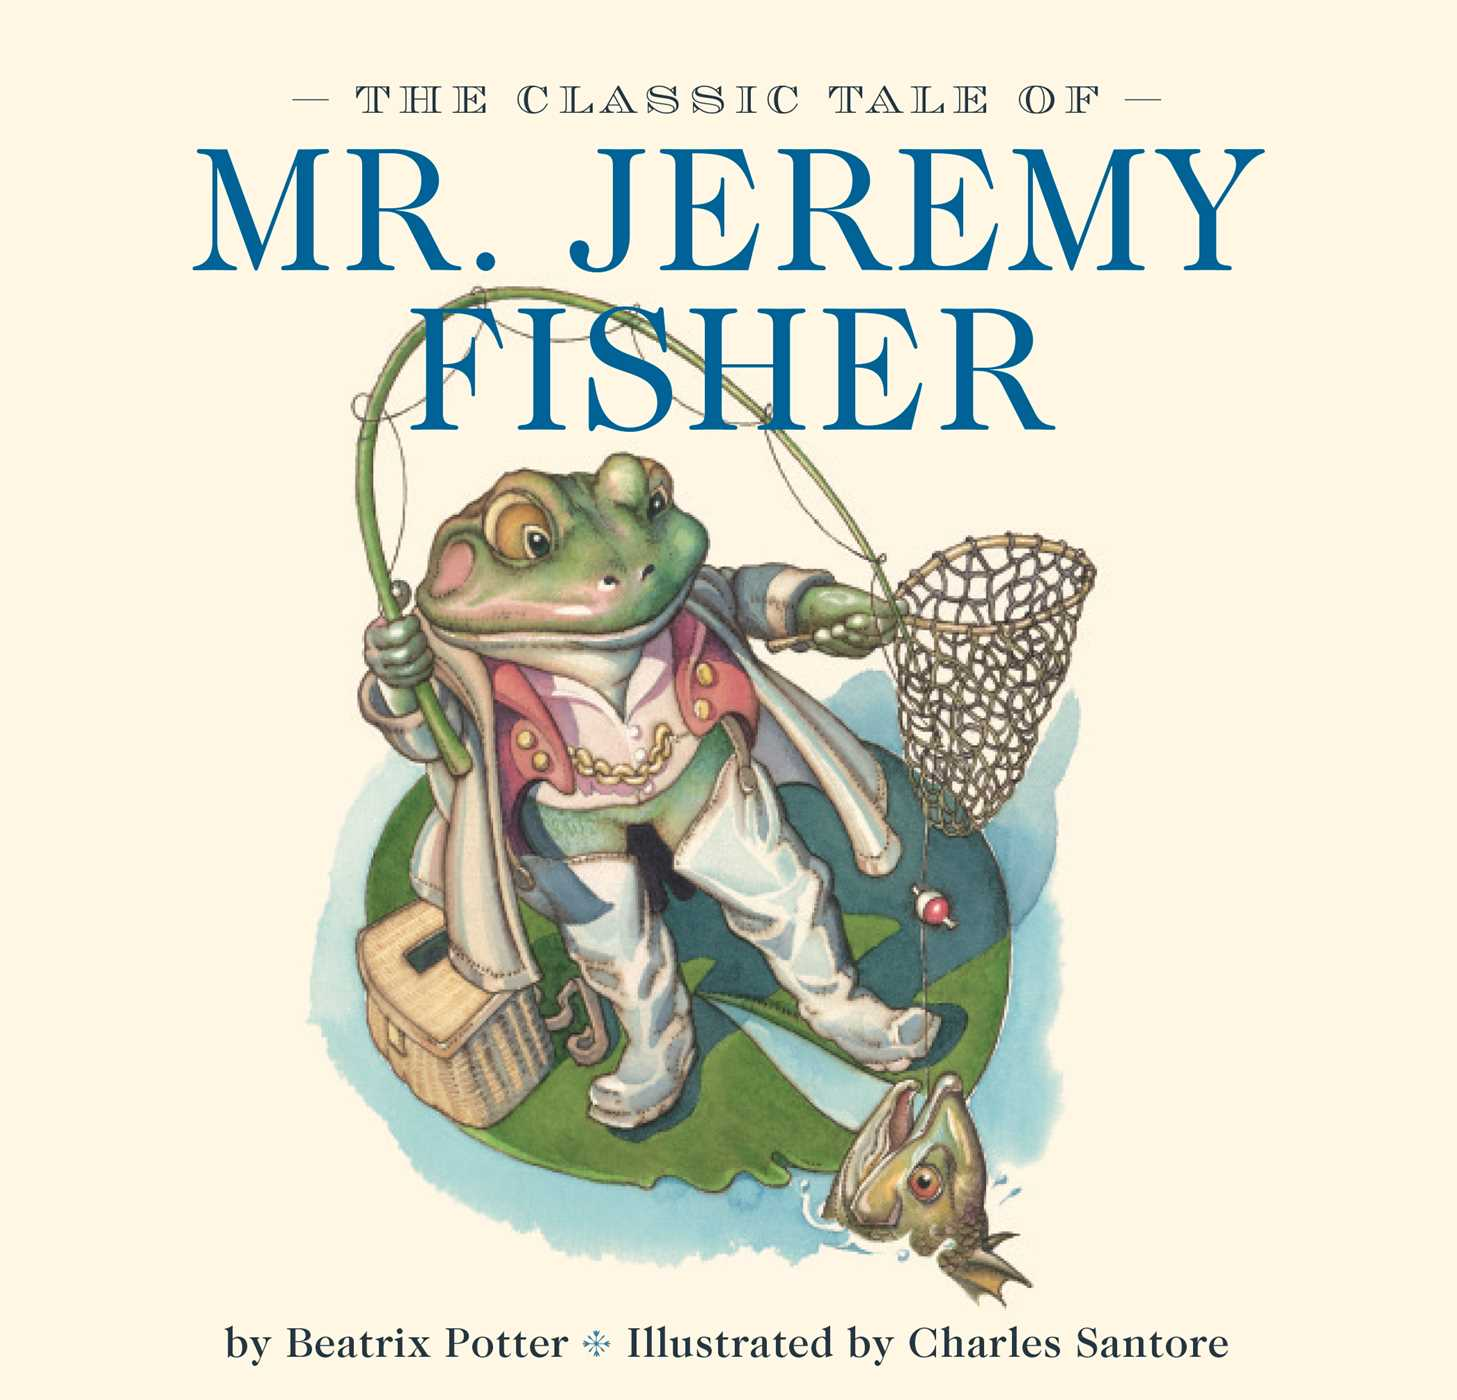 Classic tale of mr jeremy fisher 9781604335484 hr